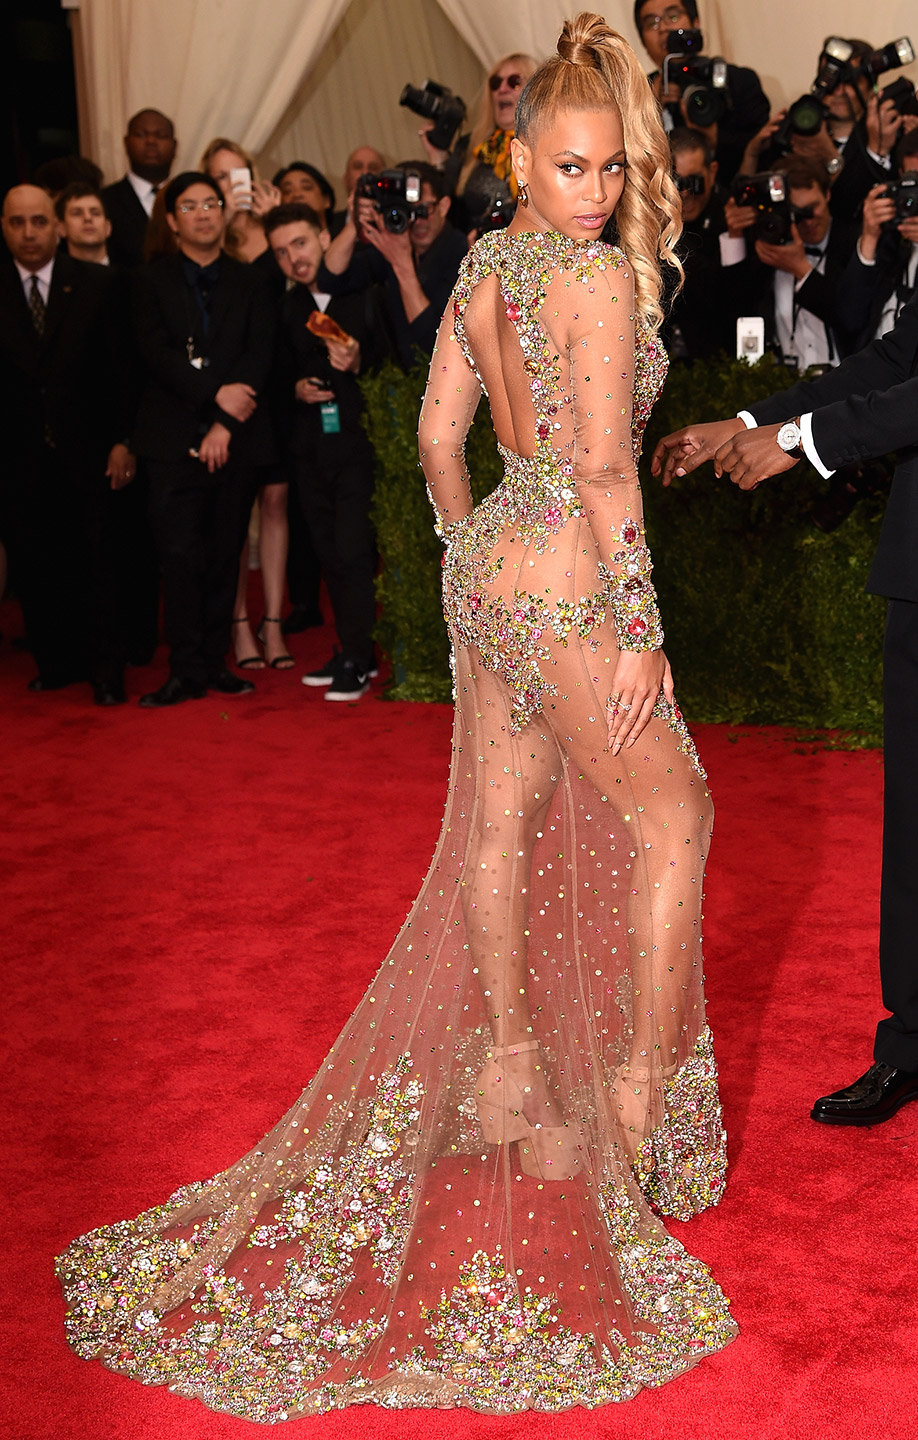 Dress Code Naked The Best And Worst Sheer Moments In The History Of Celebrity Fashion NSFW